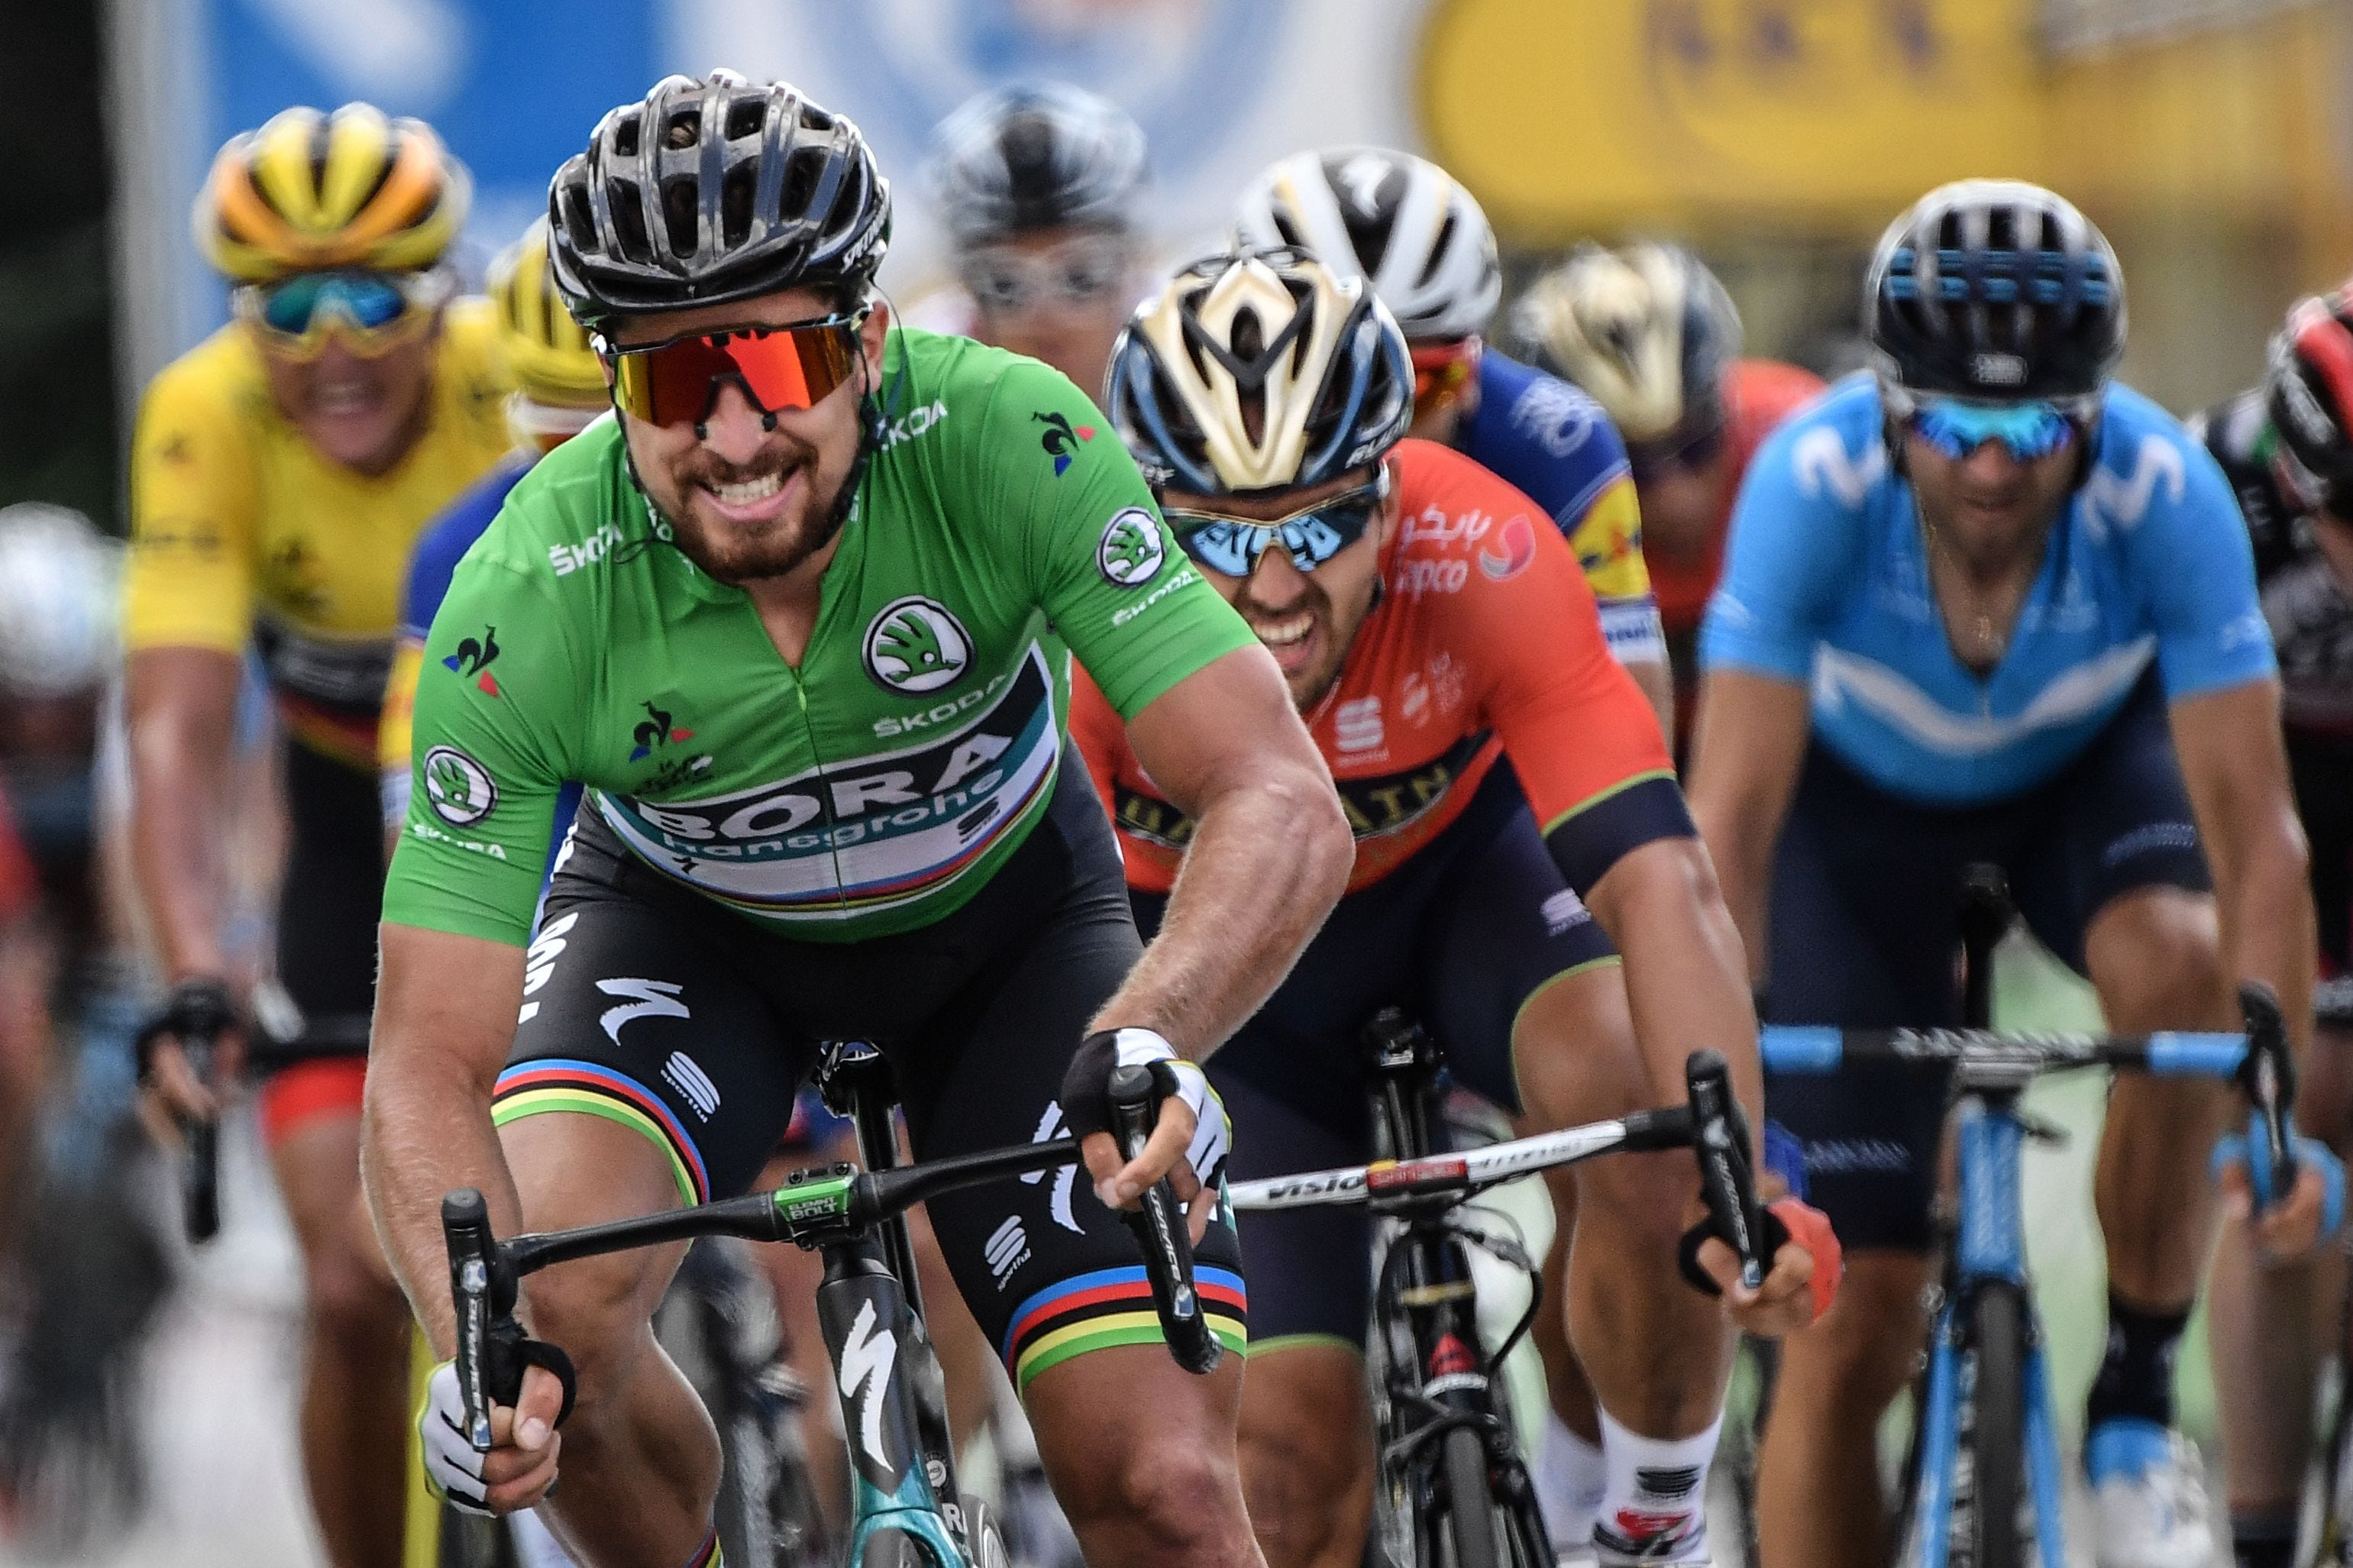 Slovakia's Peter Sagan celebrates after crossing the finish line to win the fifth stage of the 105th edition of the Tour de France cycling race between Lorient and Quimper, western France.